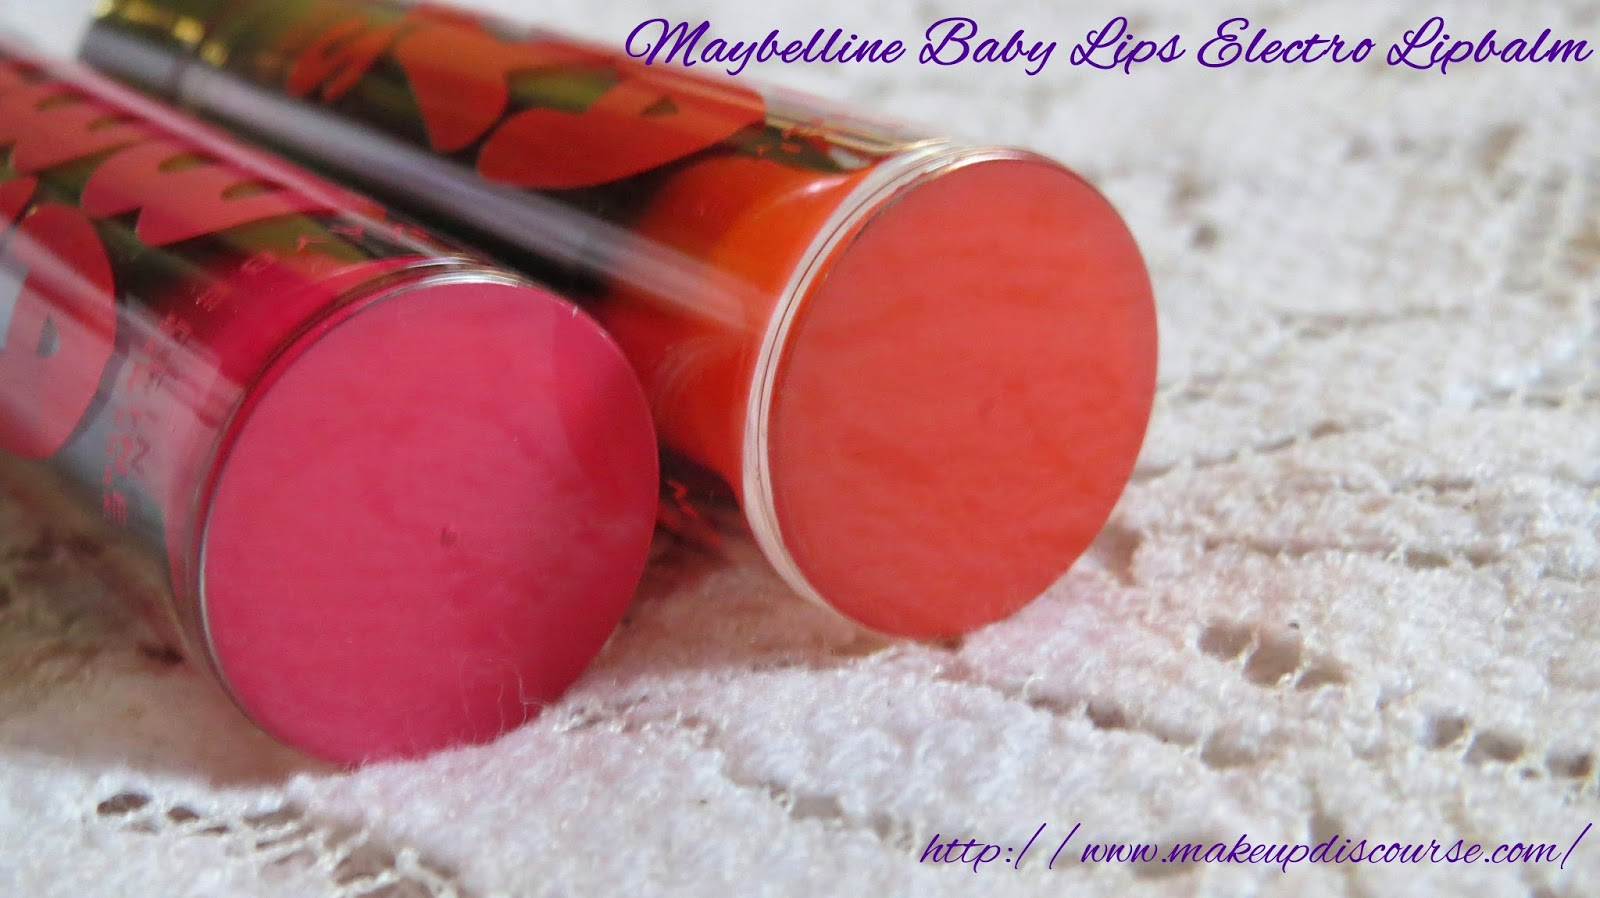 Maybelline Baby Lips Electro Pop in Oh! Orange! and Pink Shock in India